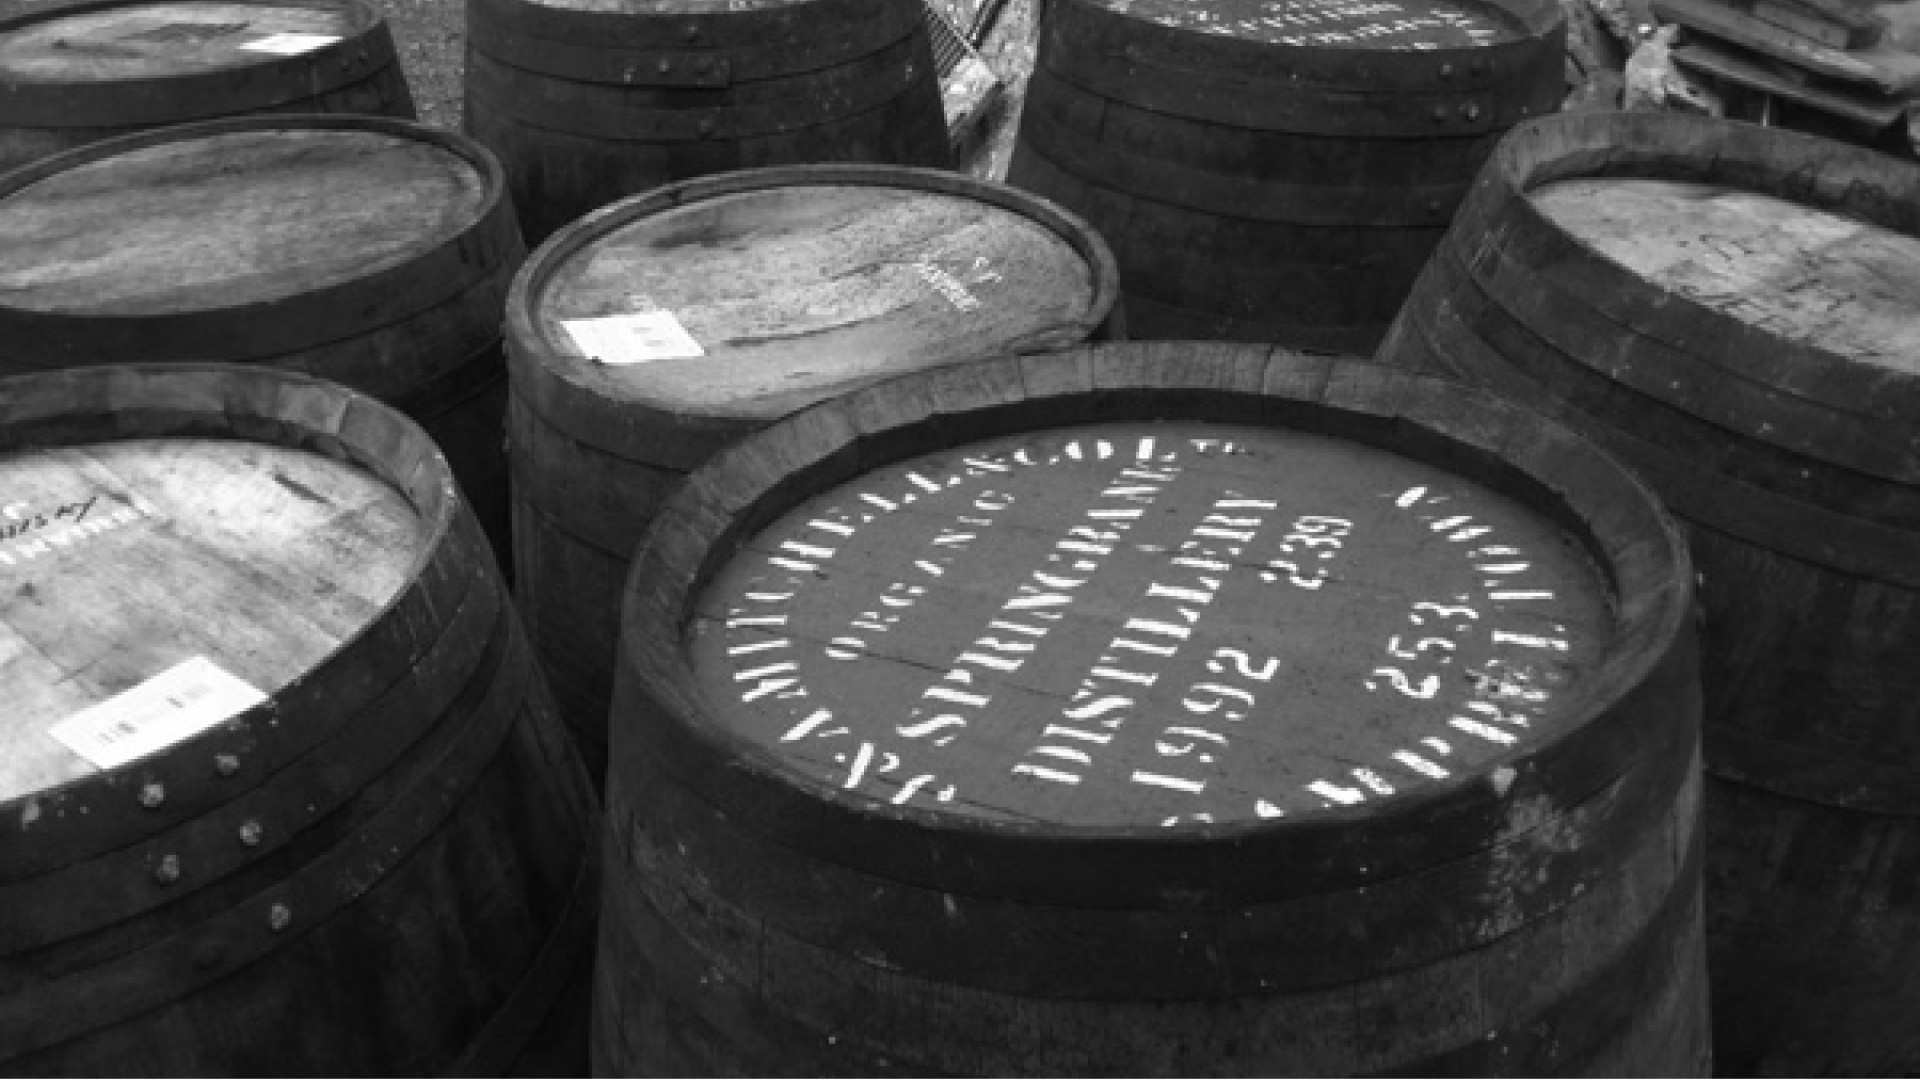 Barrell-ageing whiskey at Da Mhile, Wales